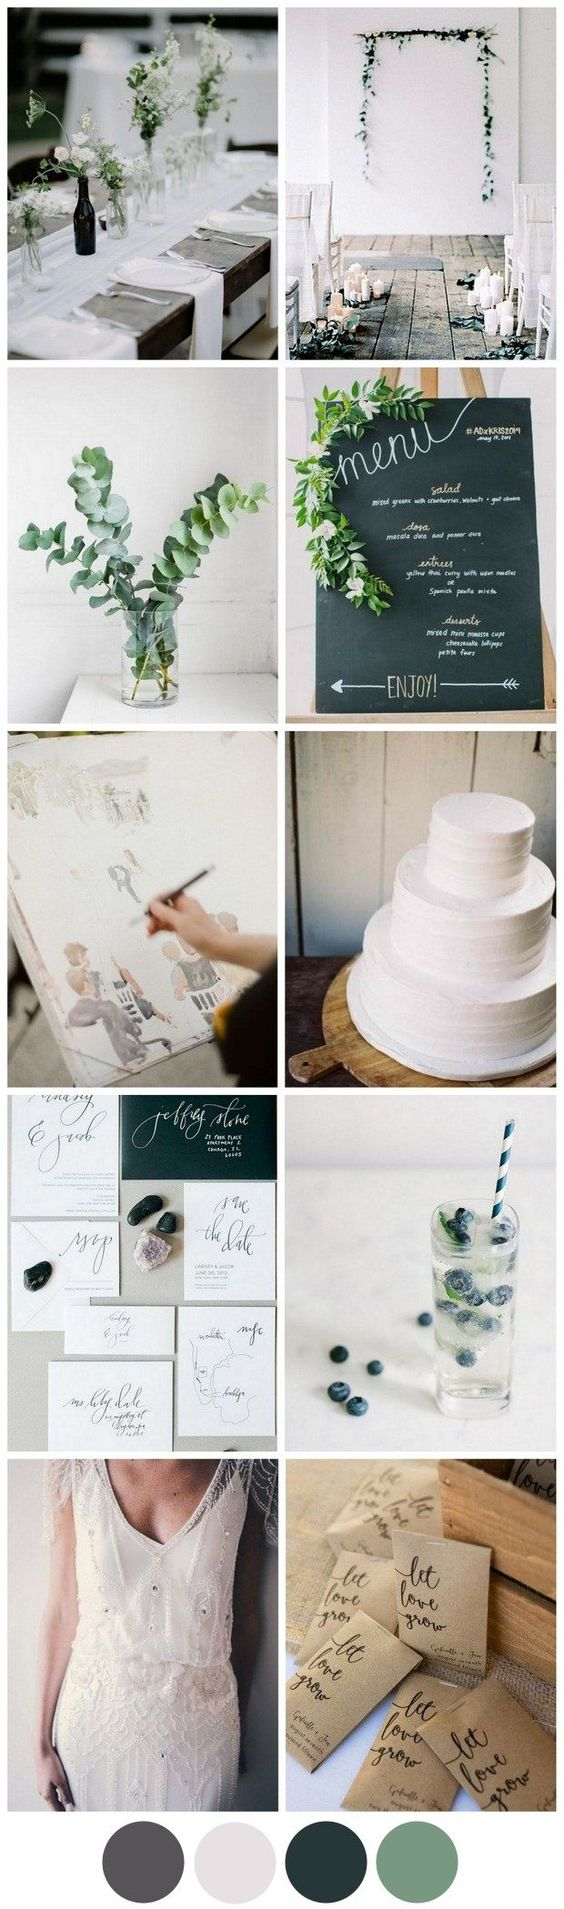 A modern minimal wedding is an exercise in inspiration restraint but if you practice it in the planning, it's sure to pay off amazingly on the day!